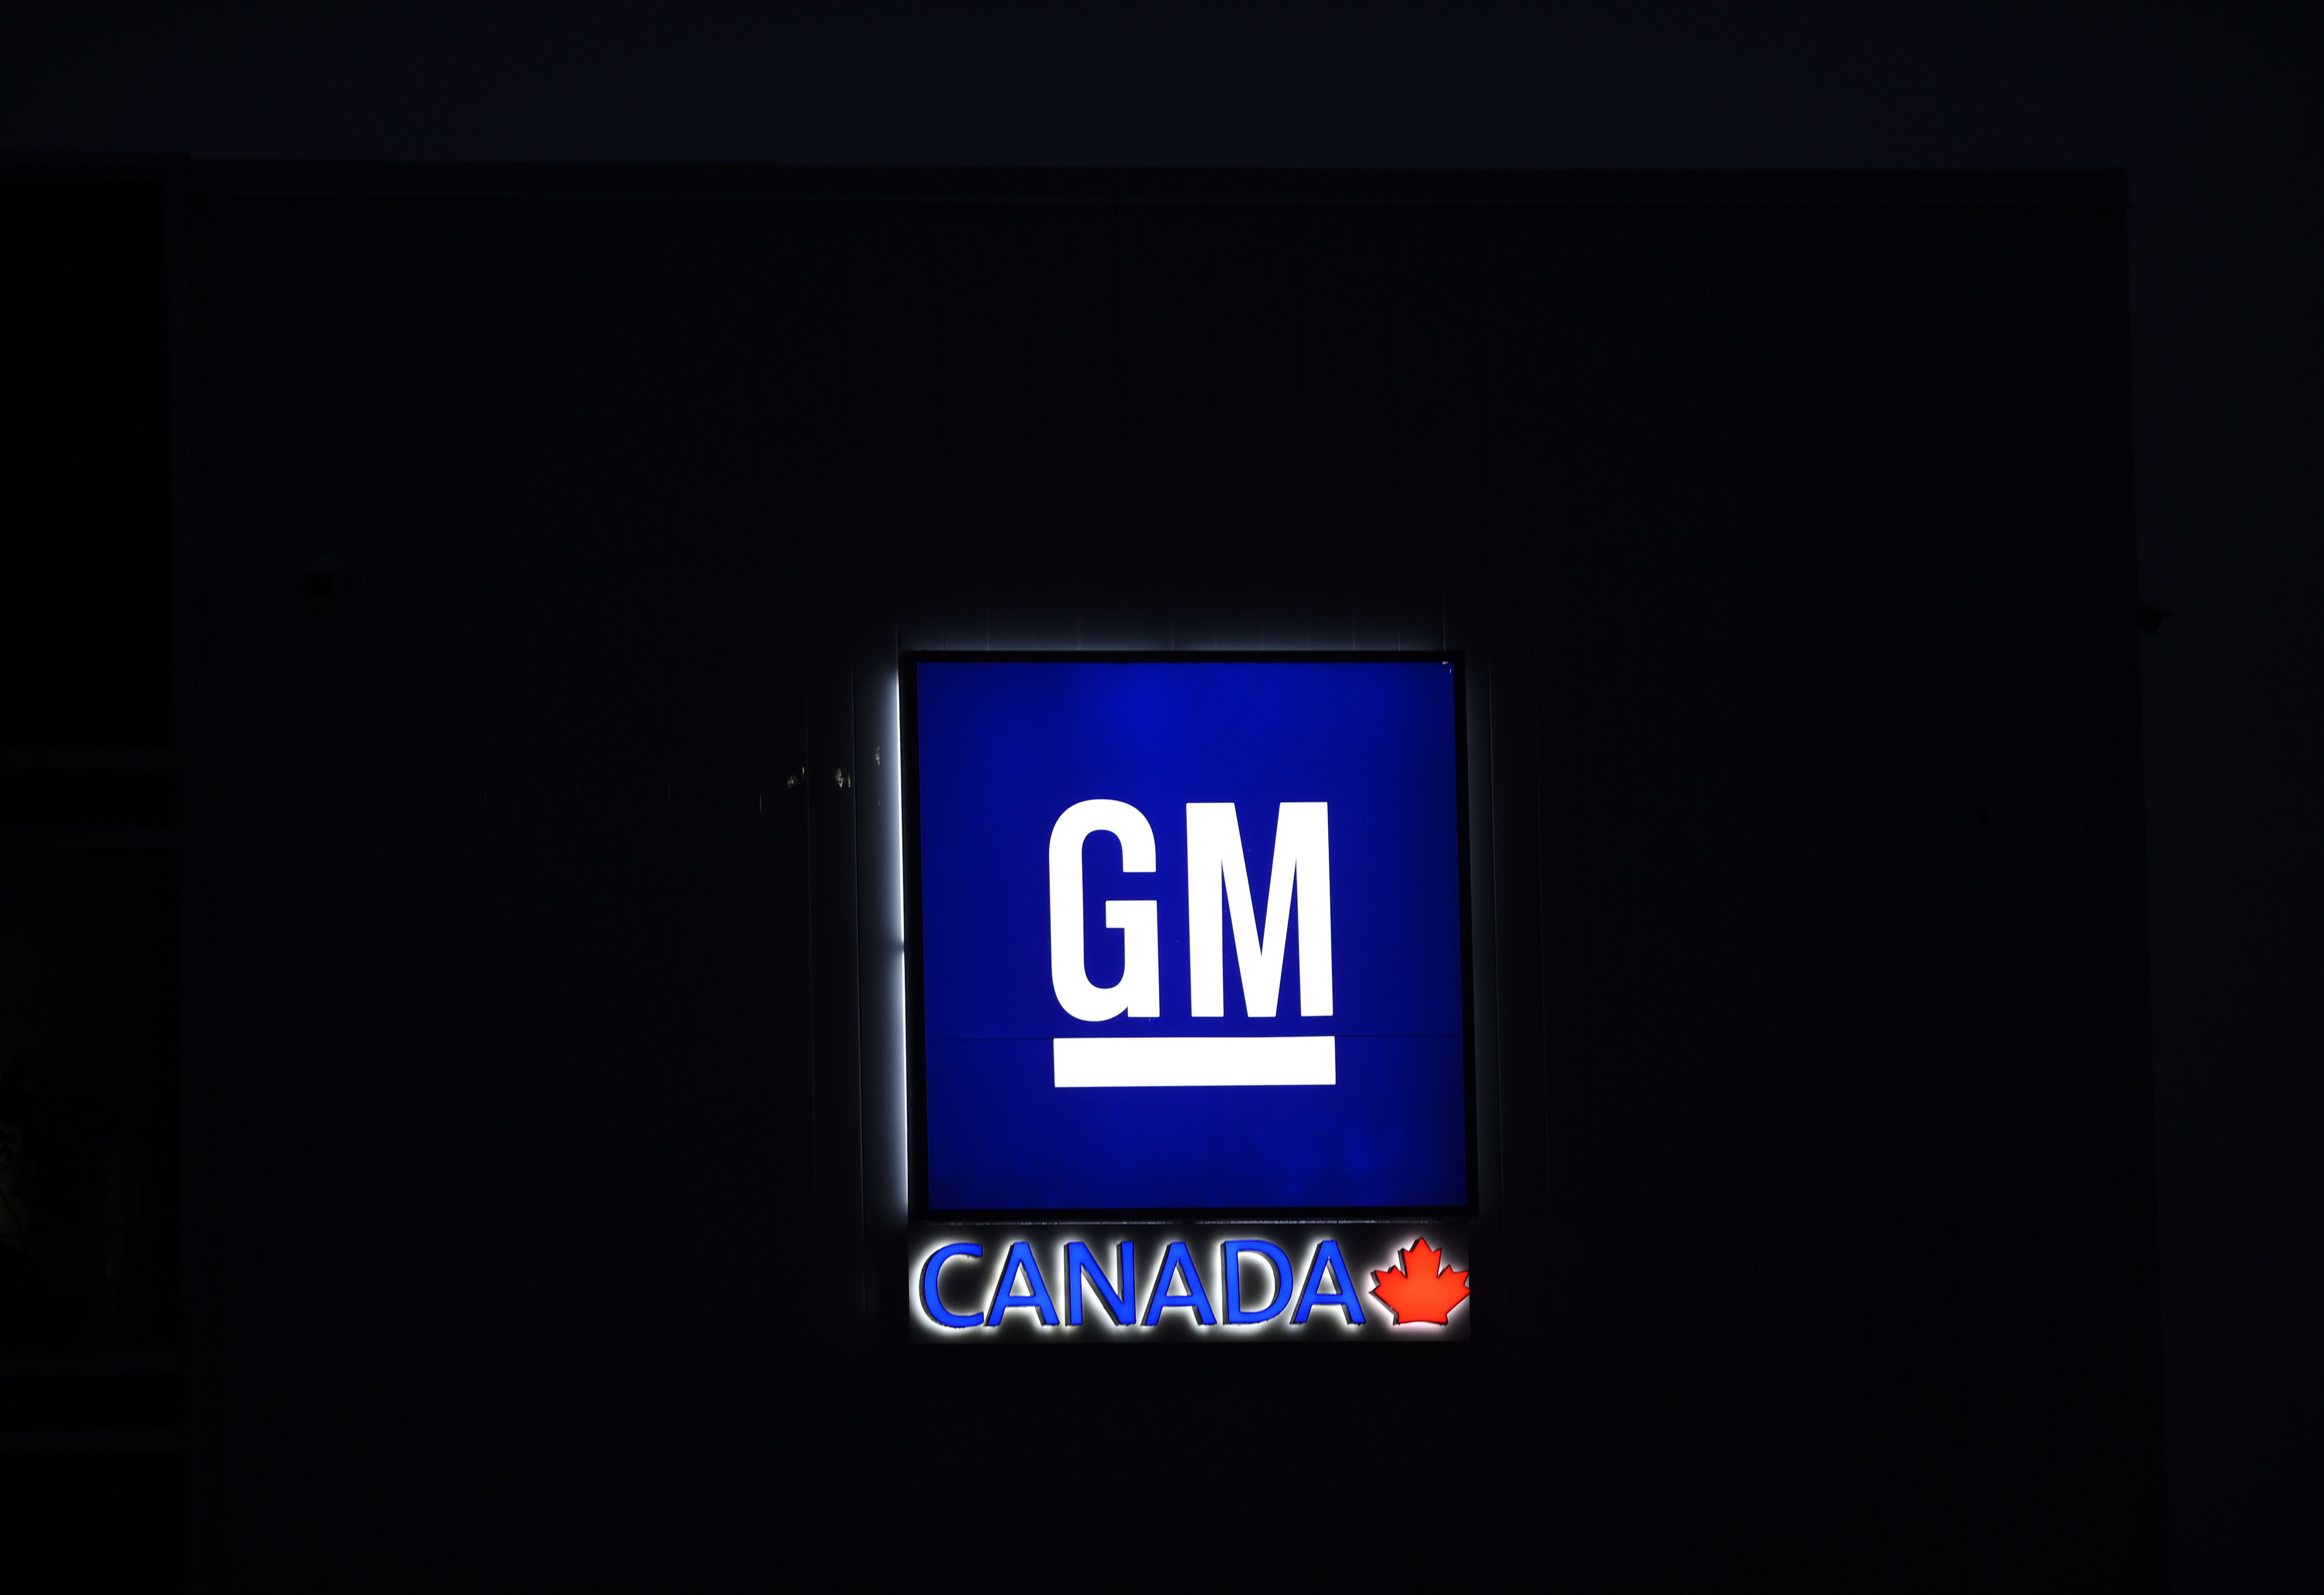 Ontario auto sector sees 3,900 temporary layoffs amid GM strike in U.S.